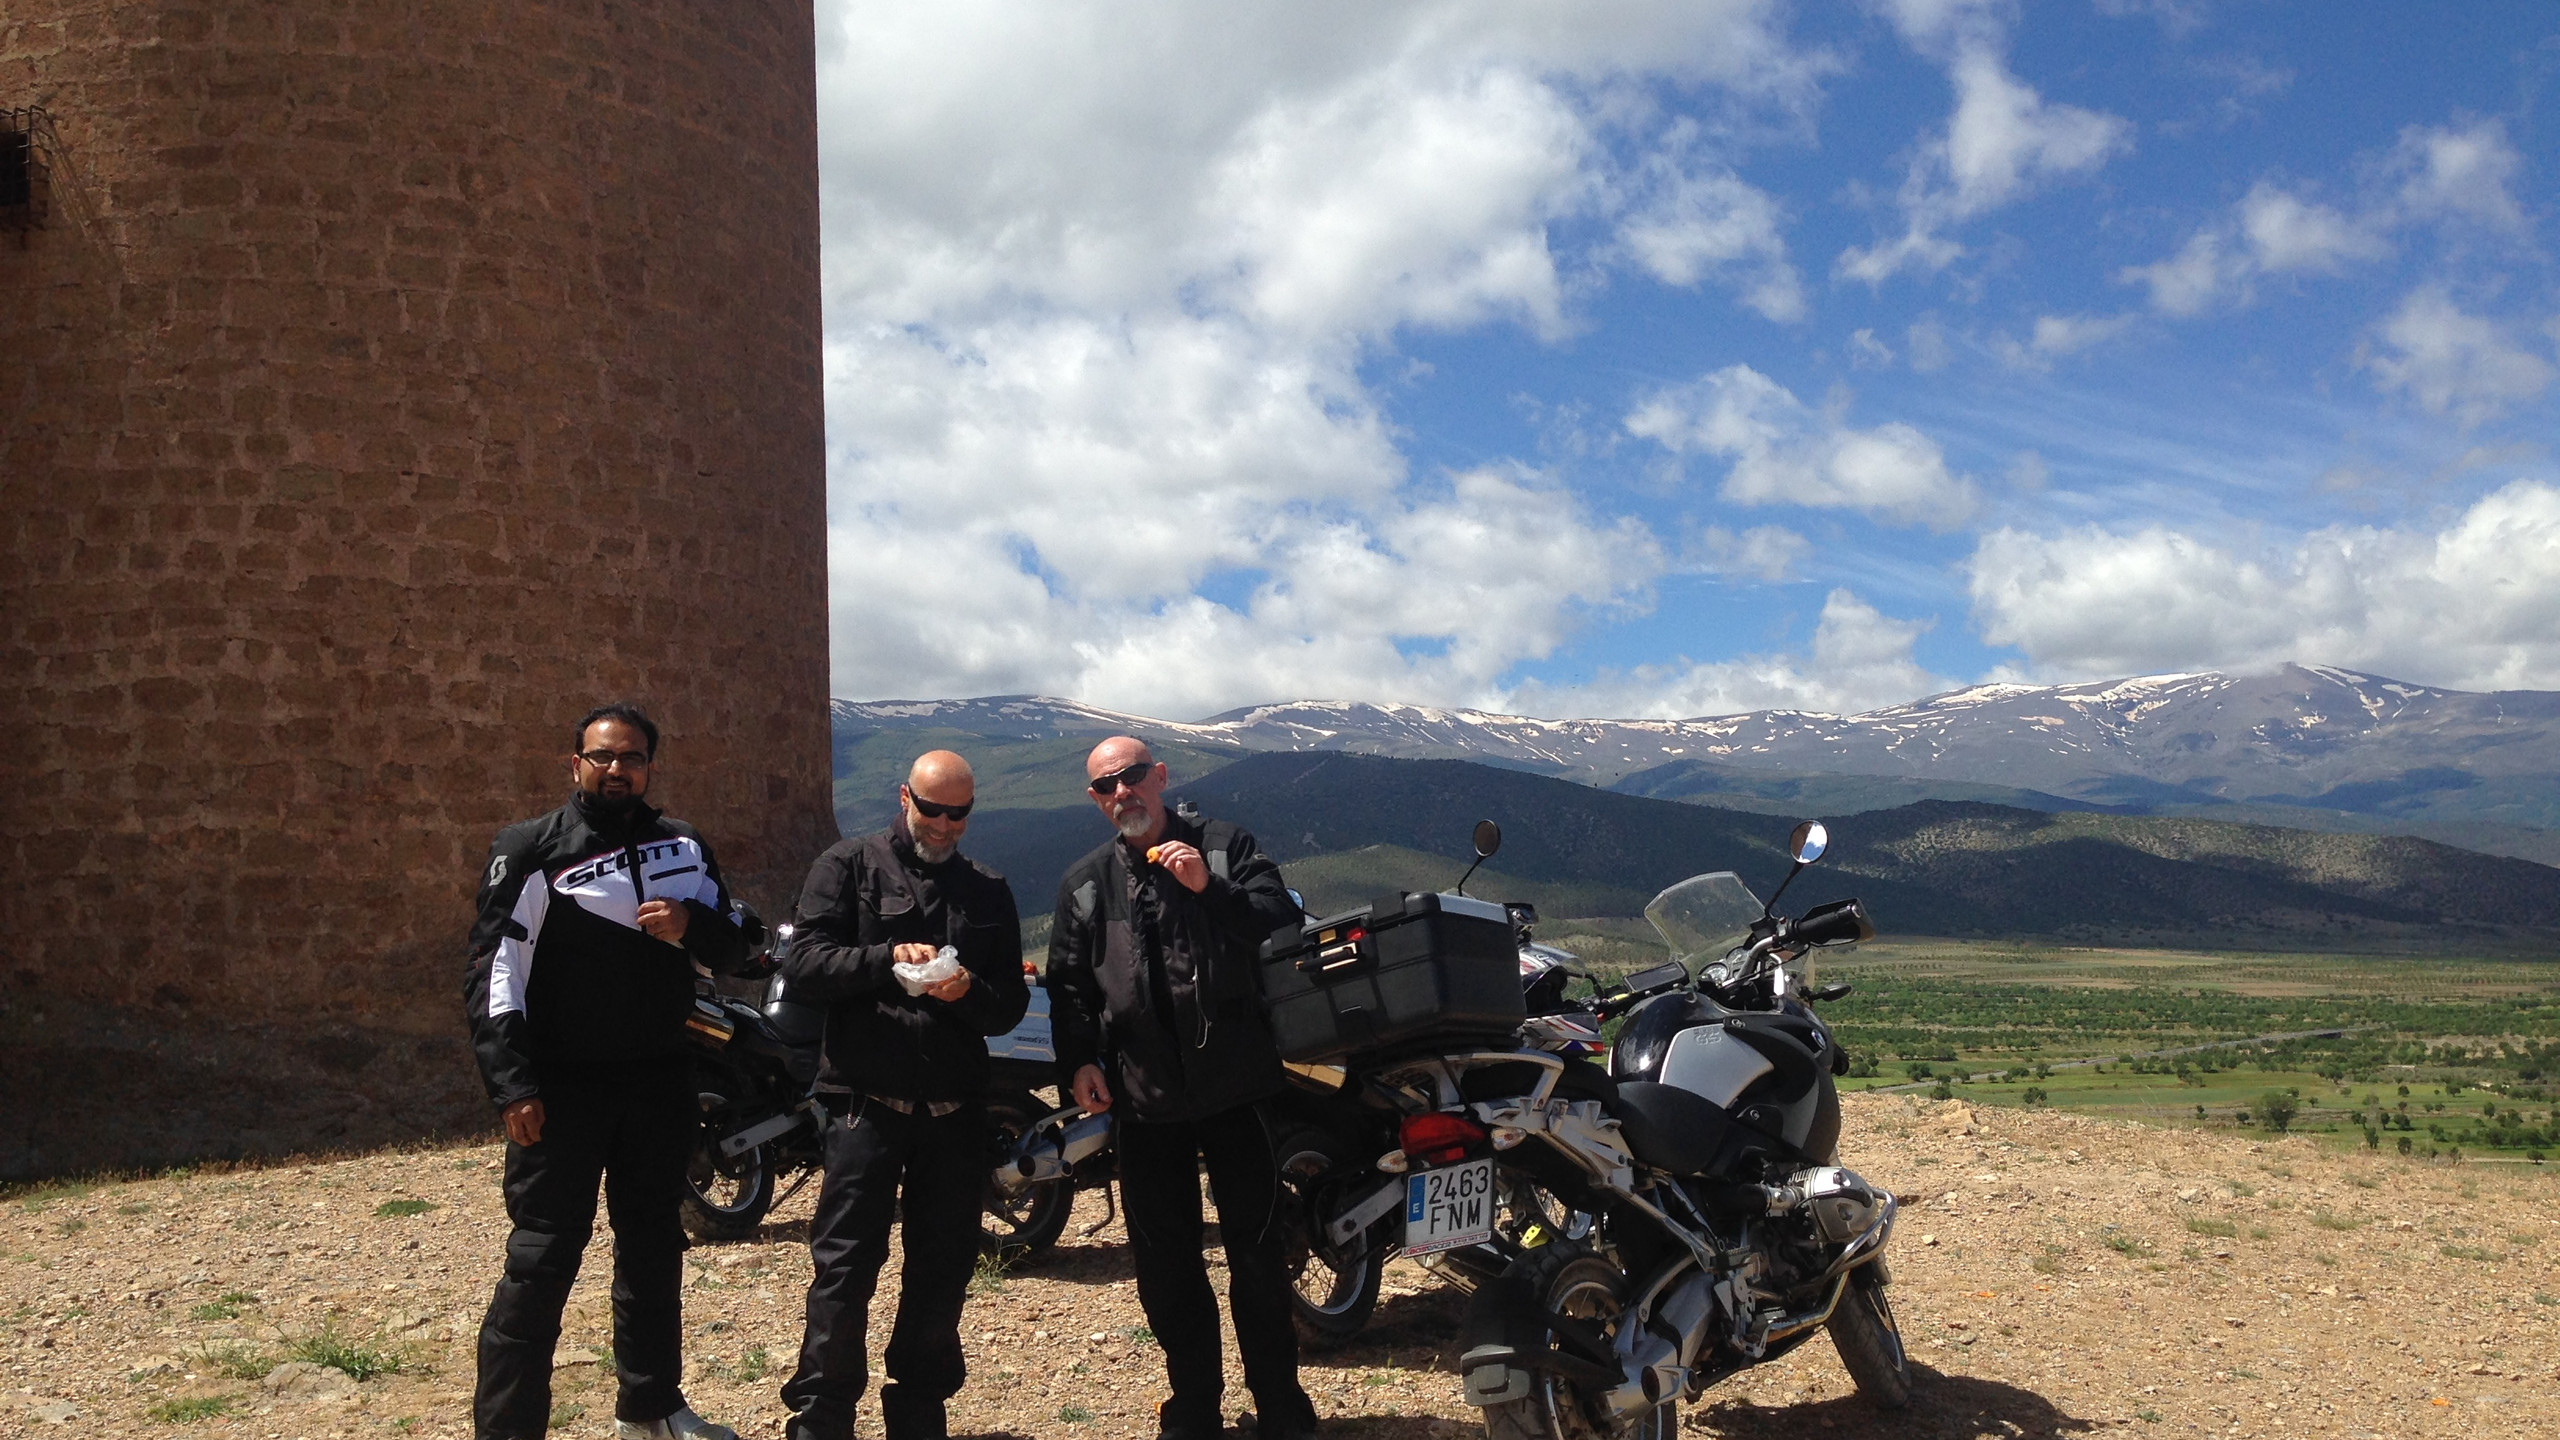 A motorcyclists well deserved pit-stop